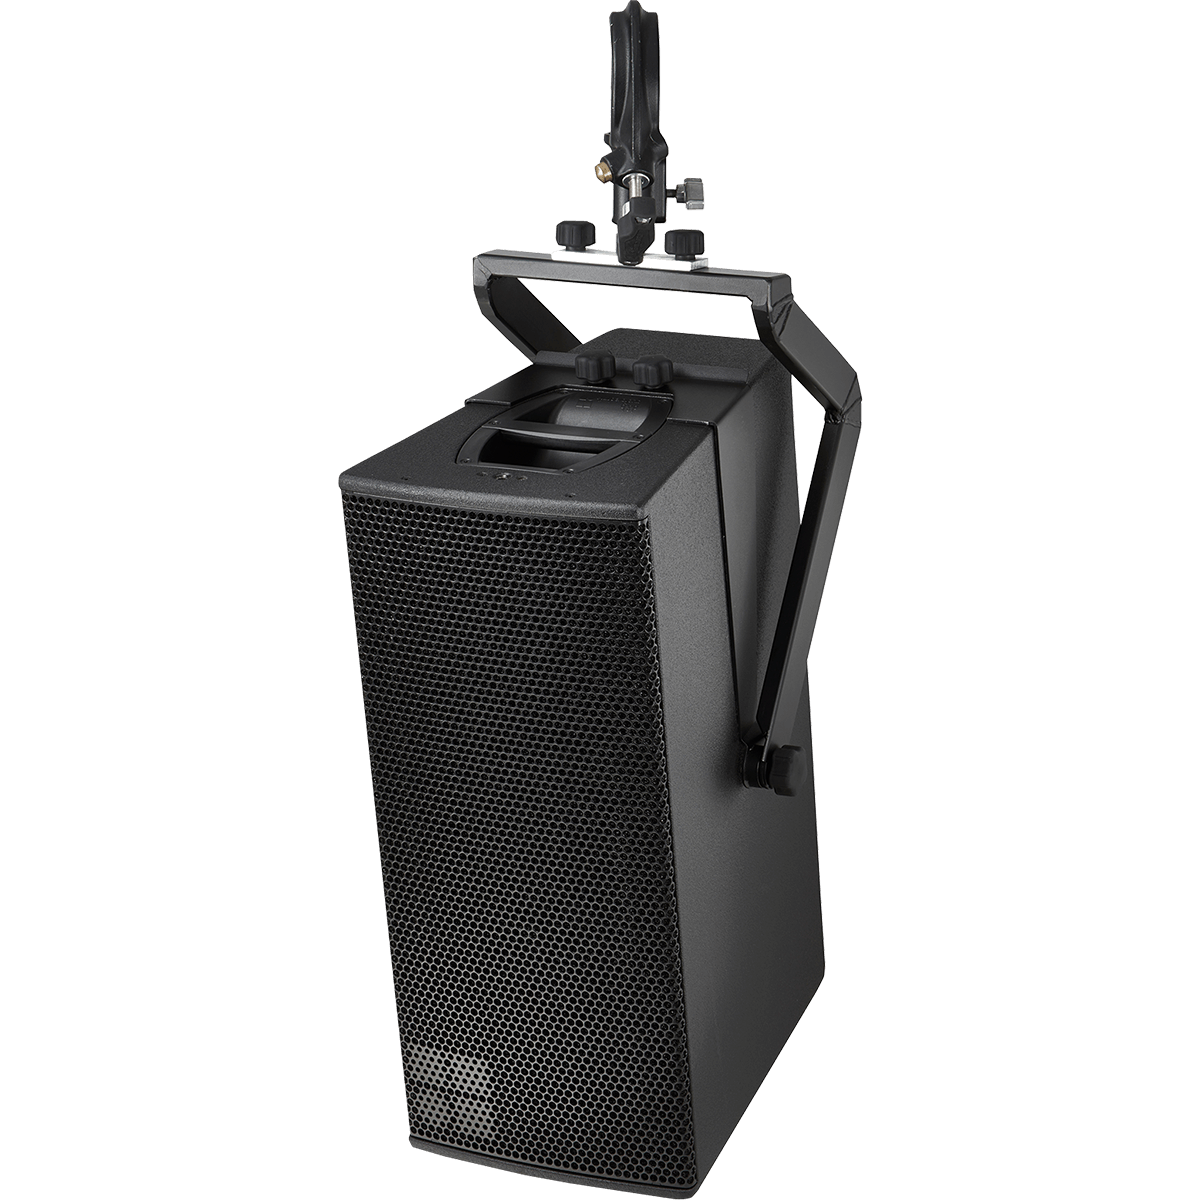 V7P loudspeaker with accessory 2